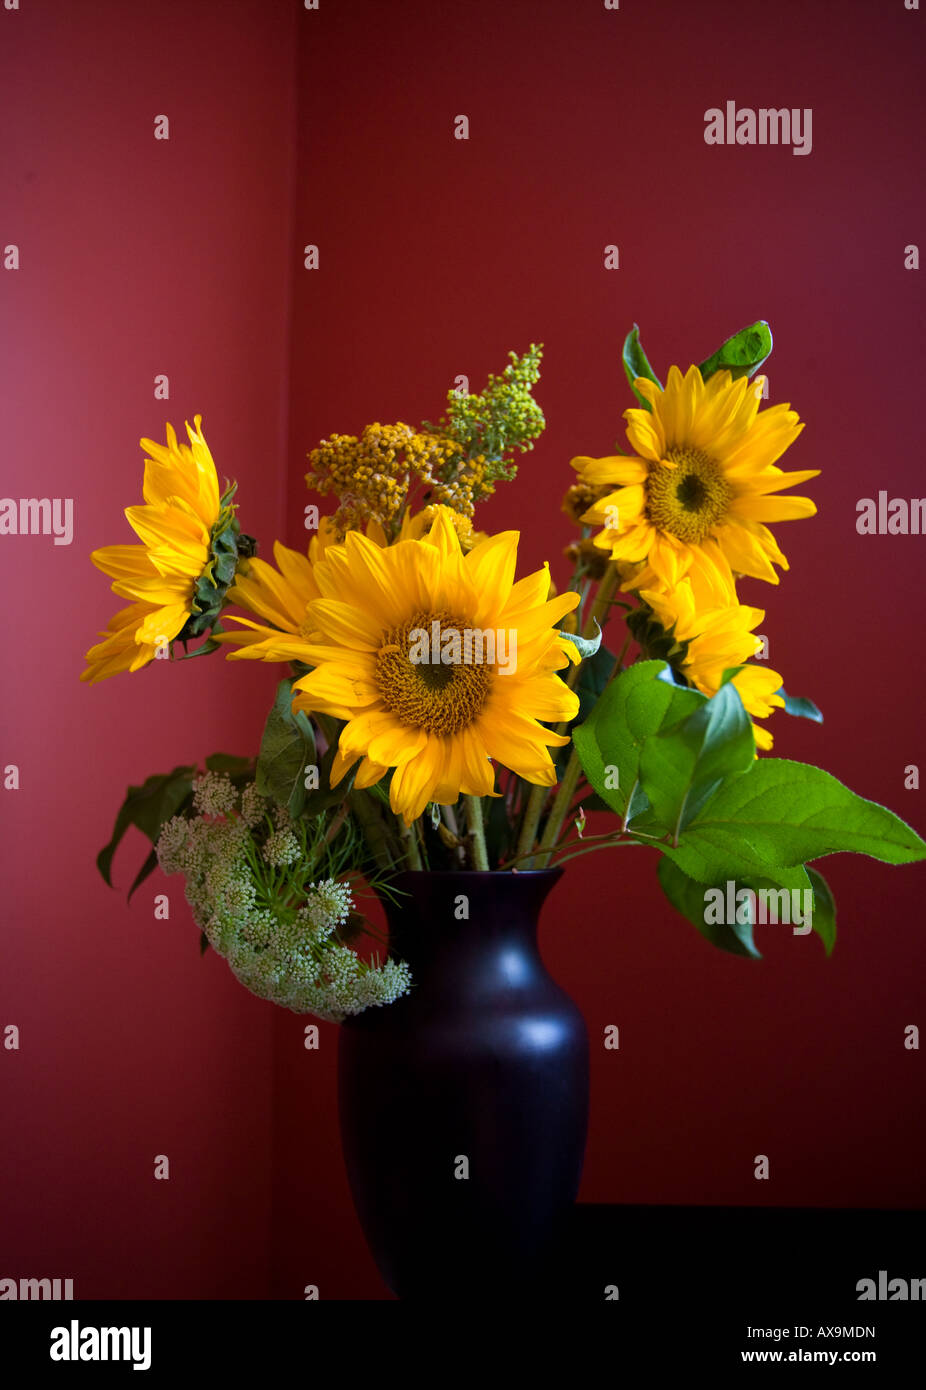 Background image mdn - Stock Photo Sunflowers In A Vase Still Life With Vivid Red Background